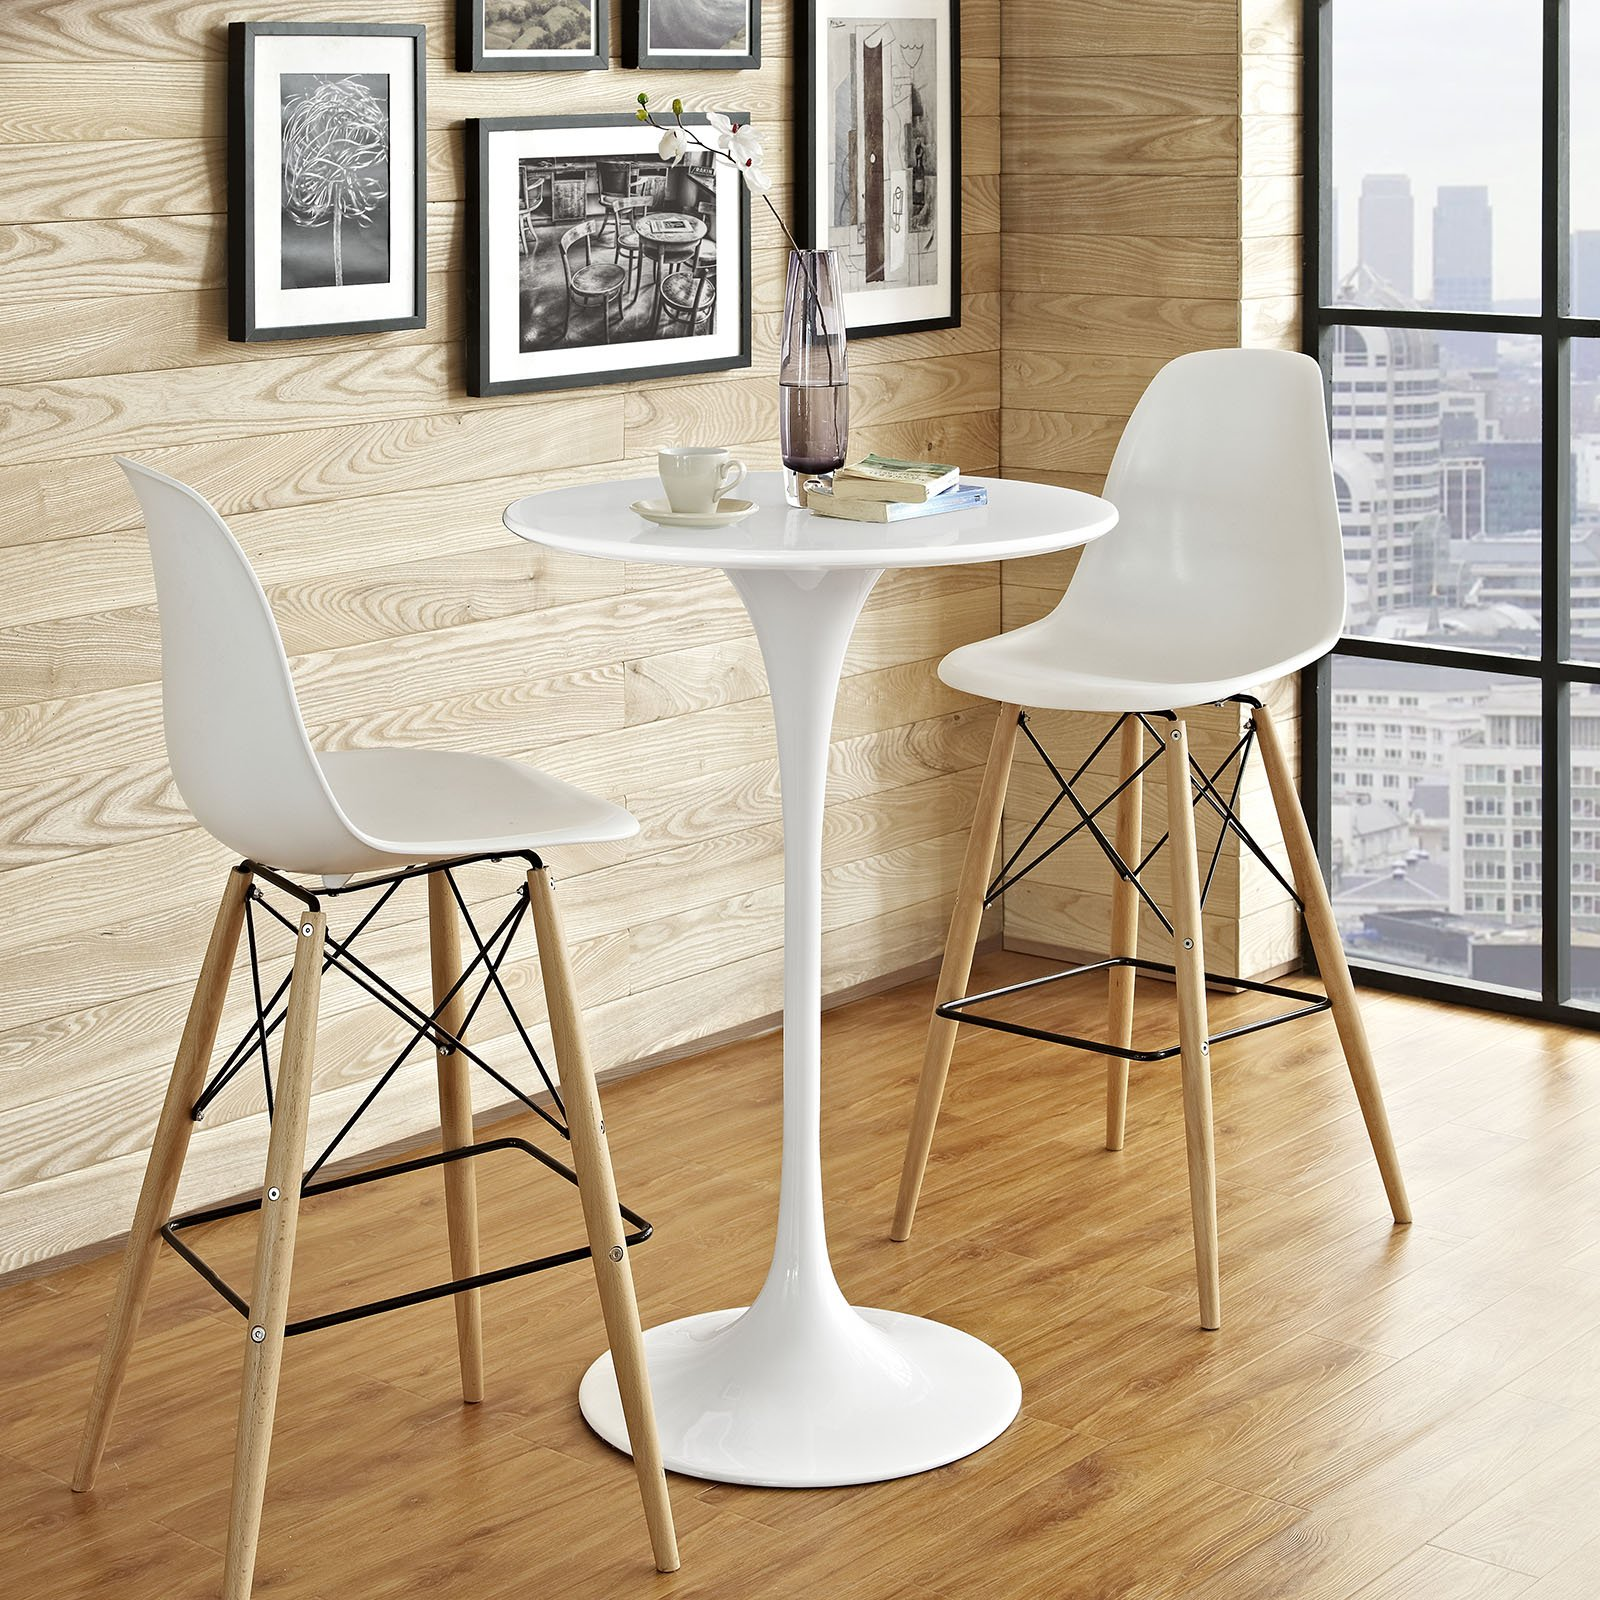 Modway Lippa 28'' Mid-Century Modern Bar Table with Round Top and Pedestal Base in White by Modway